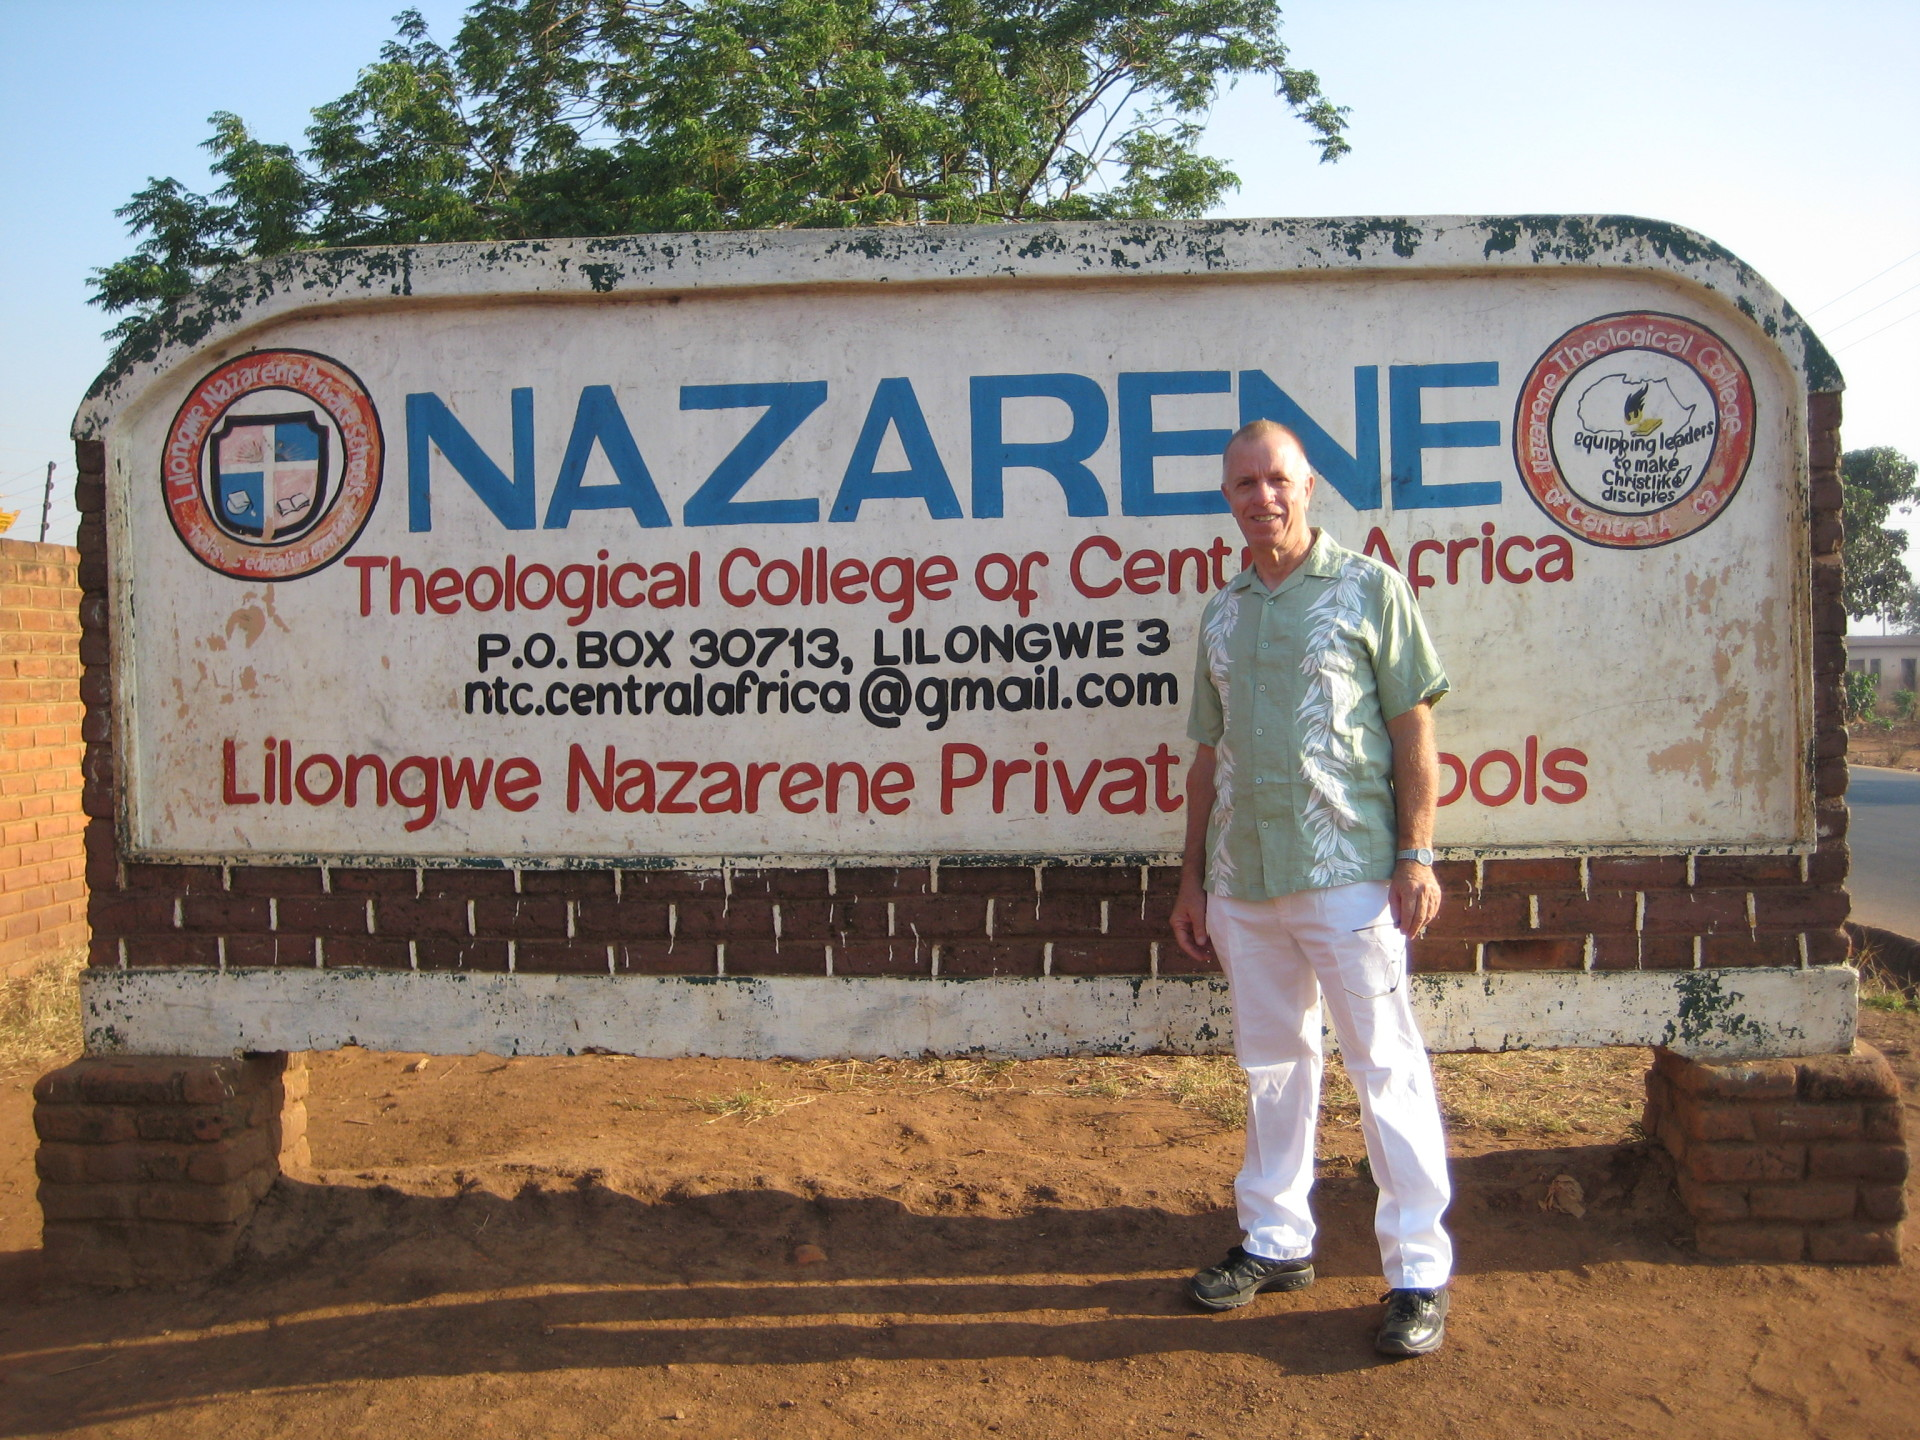 Nazarene Theological College and School - Lilongwe, Malawi